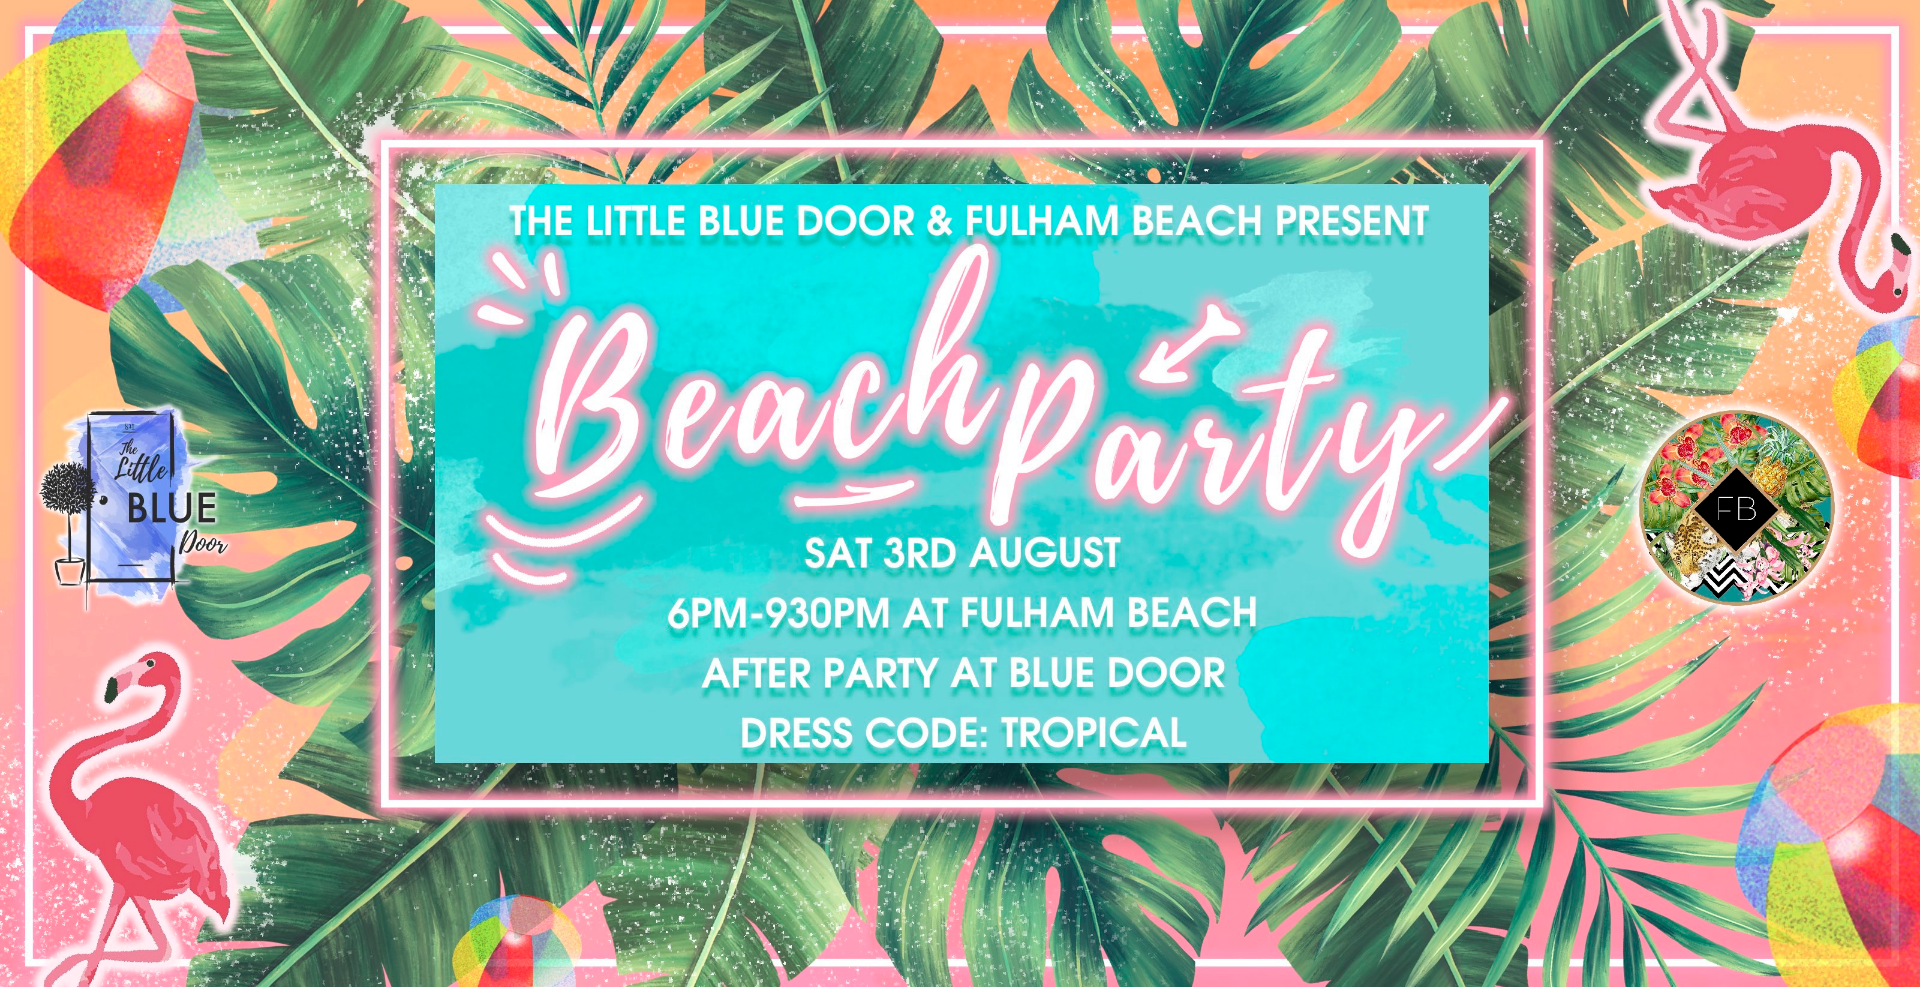 'Beach Party' at Fulham Beach and The Little Blue Door